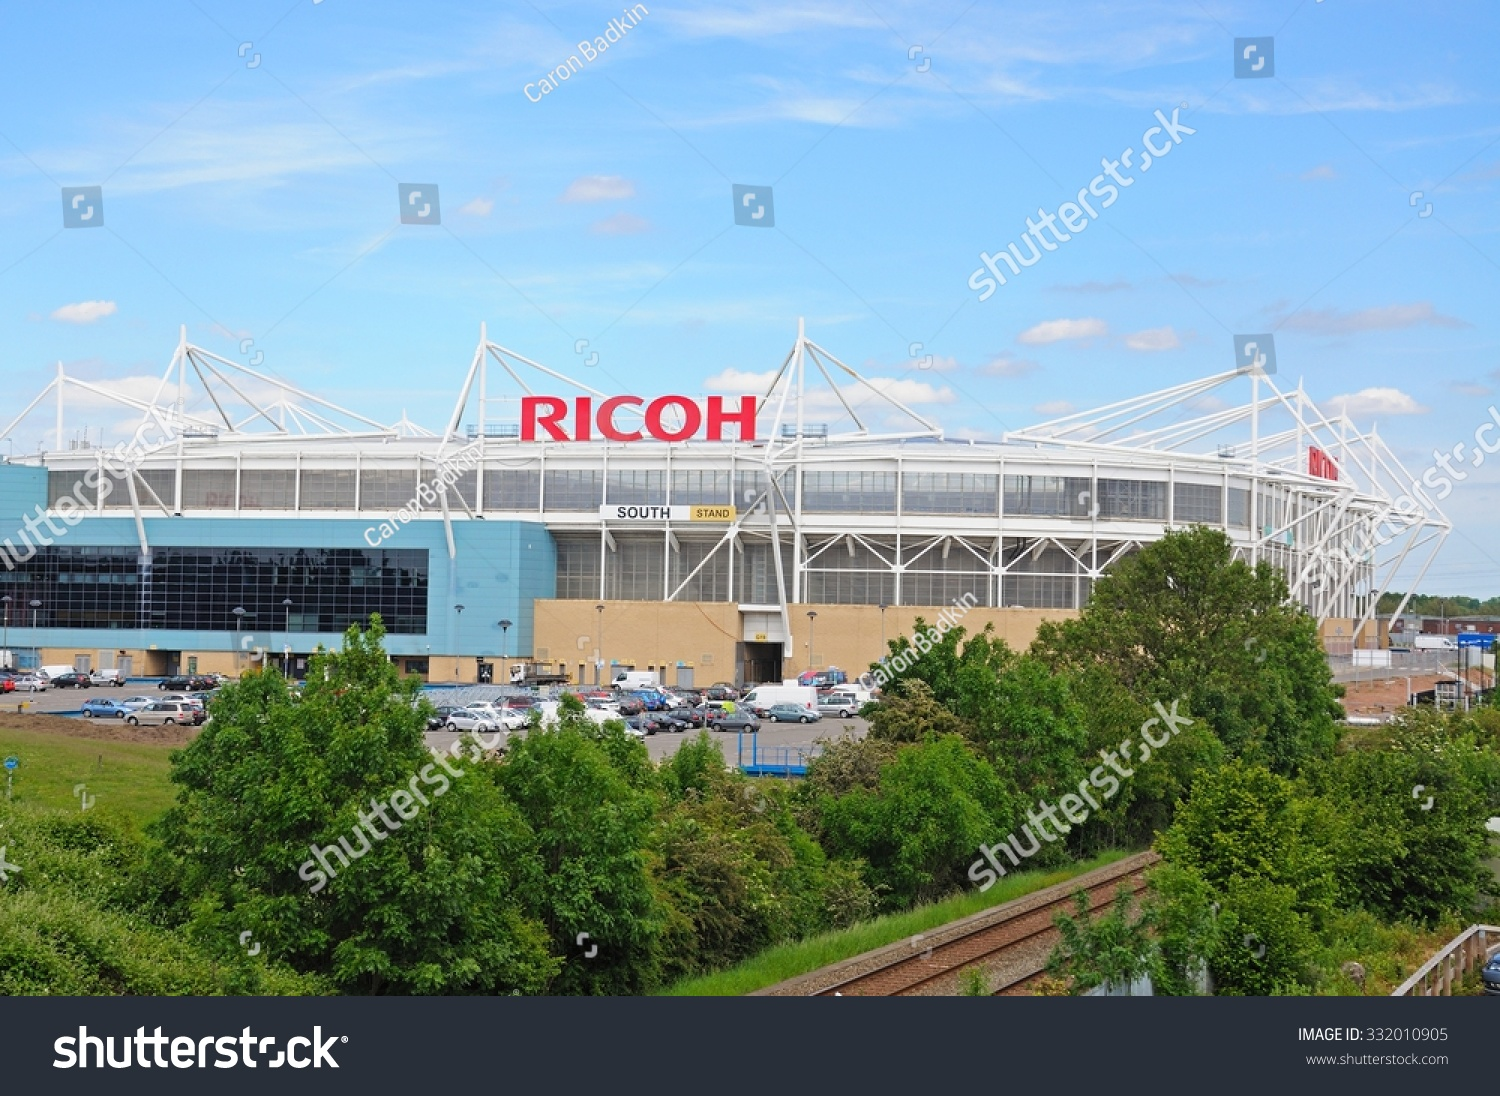 Exhibition Stand Builders West Midlands : Coventry united kingdom june stock photo